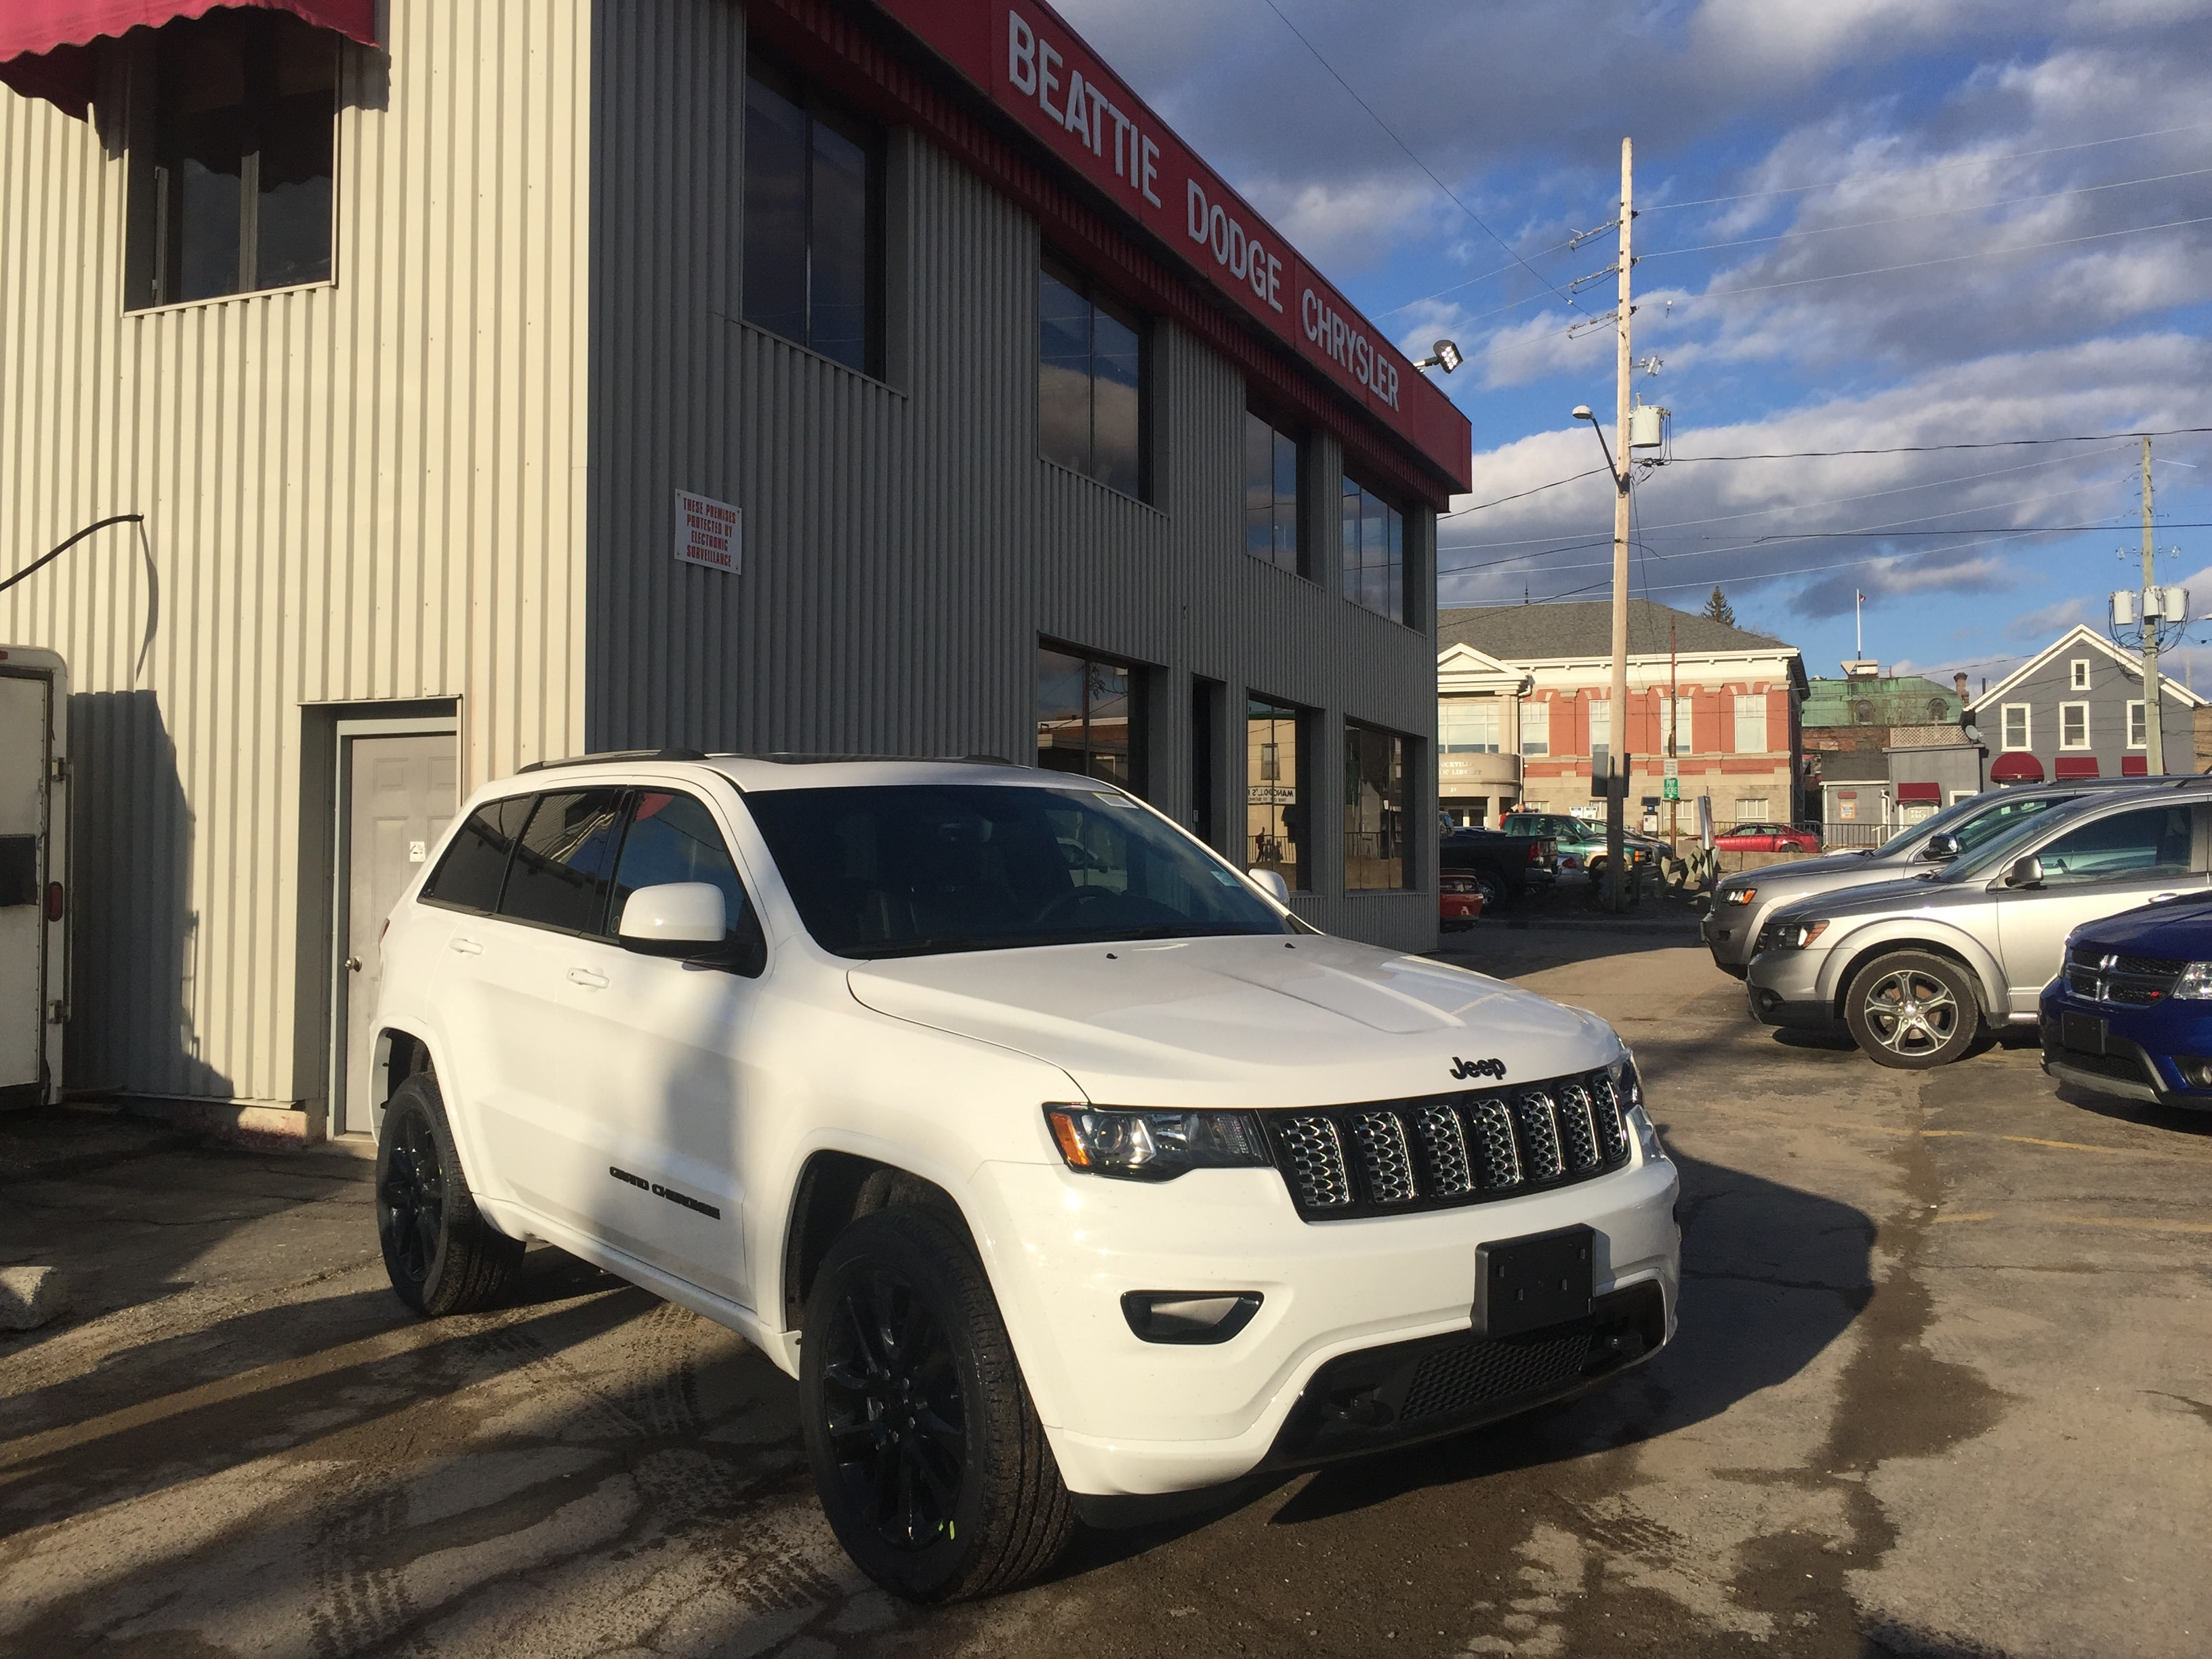 zombiedrive jeep photos information used compass and